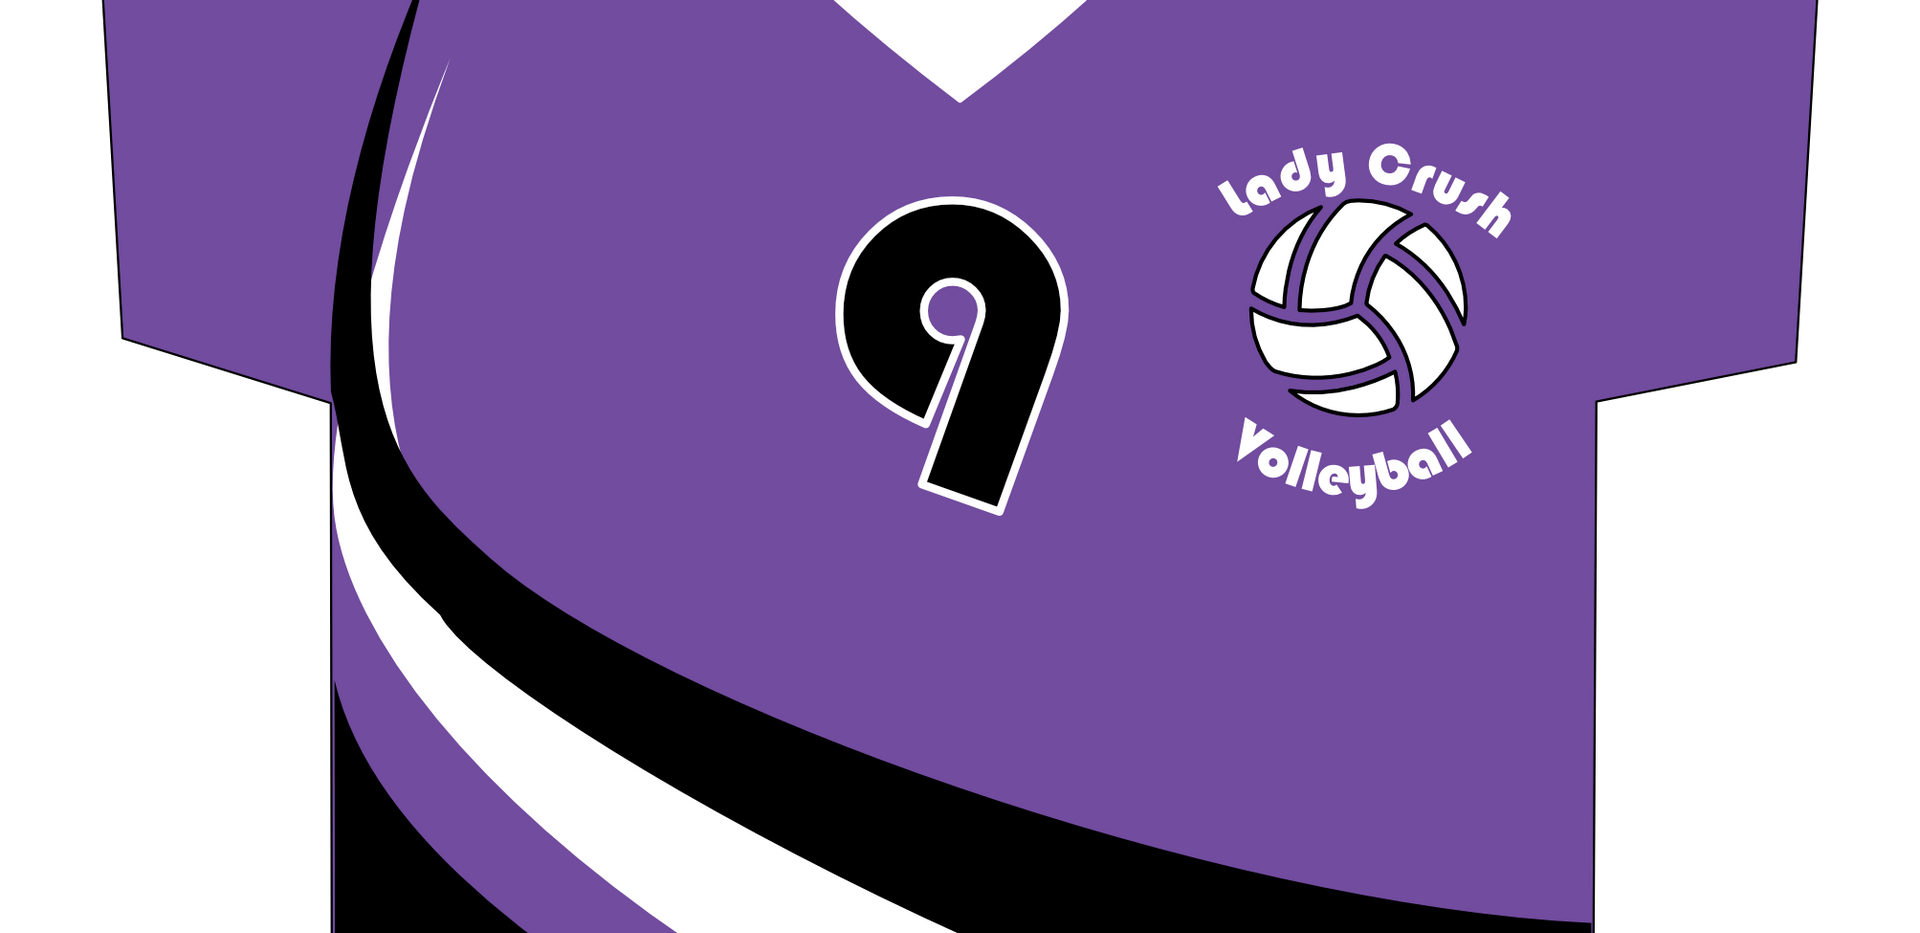 Volleyball Jersey Rally Towel